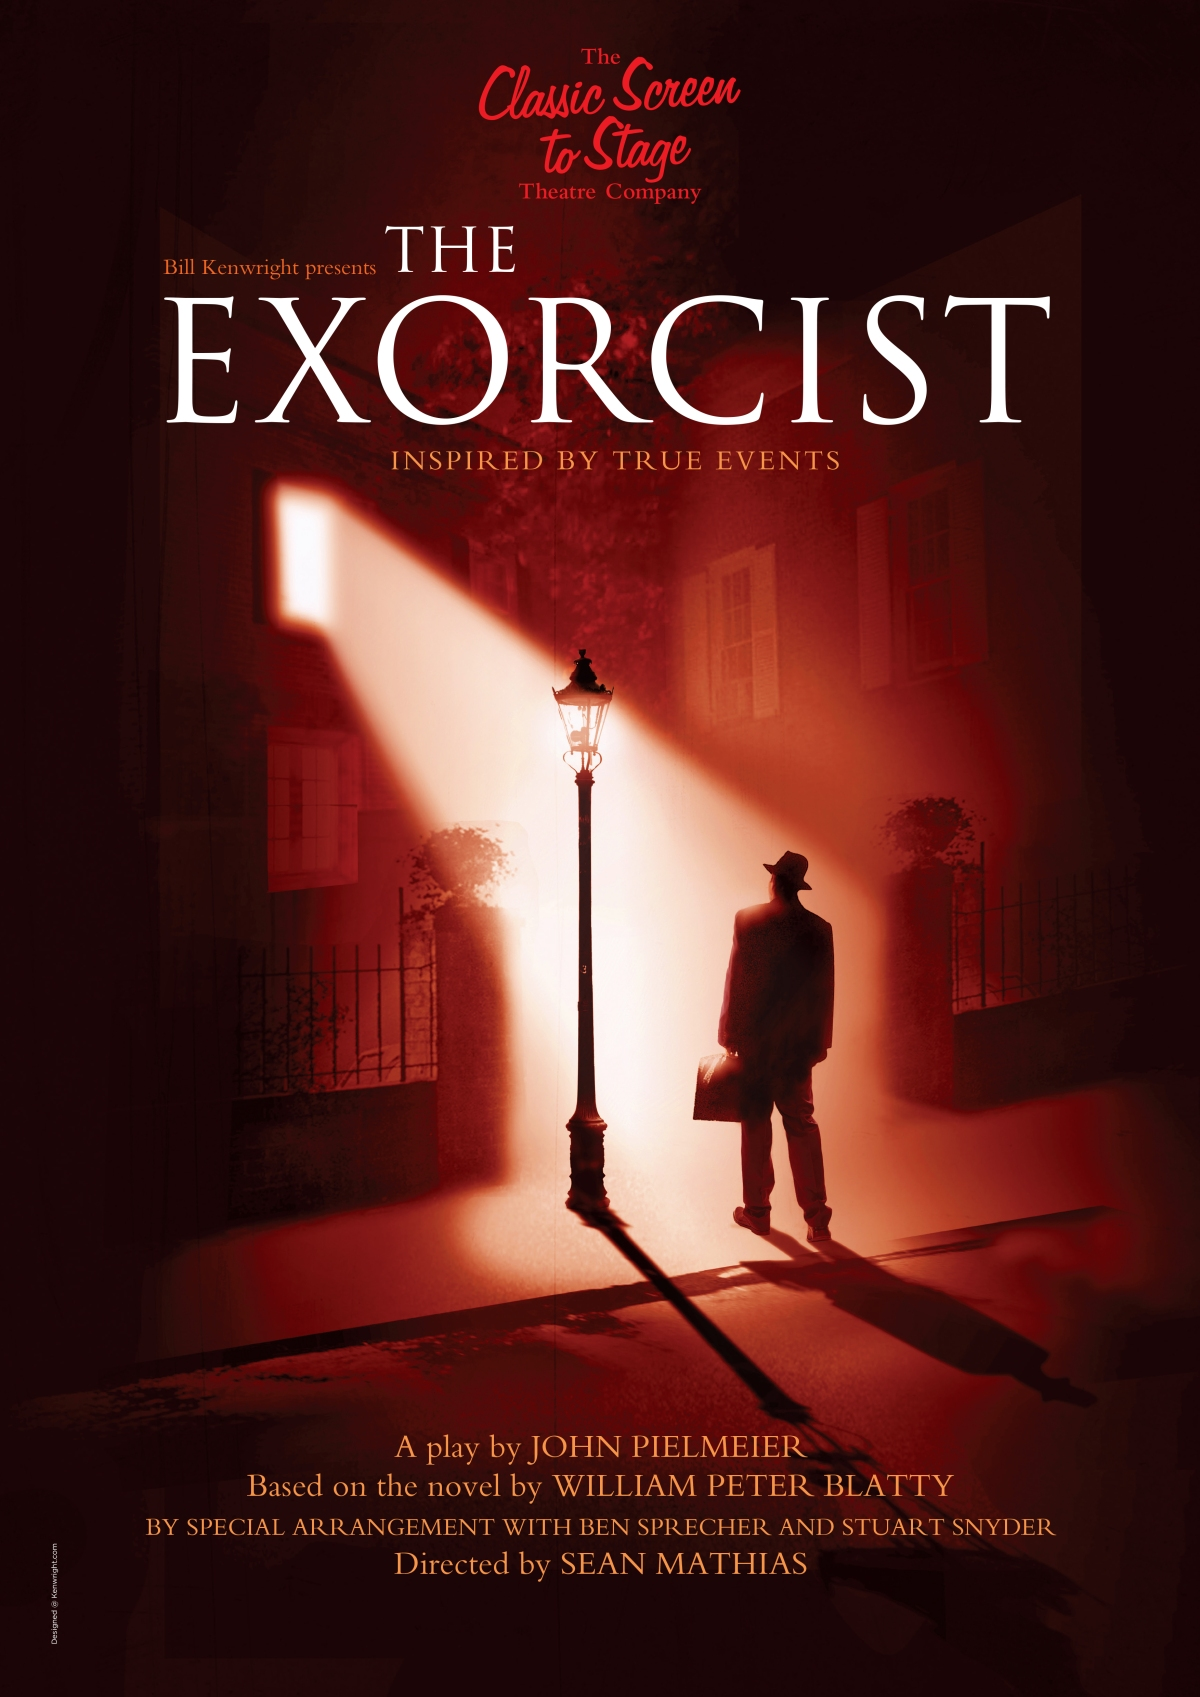 THE EXORCIST - Poster (Art180319).jpg